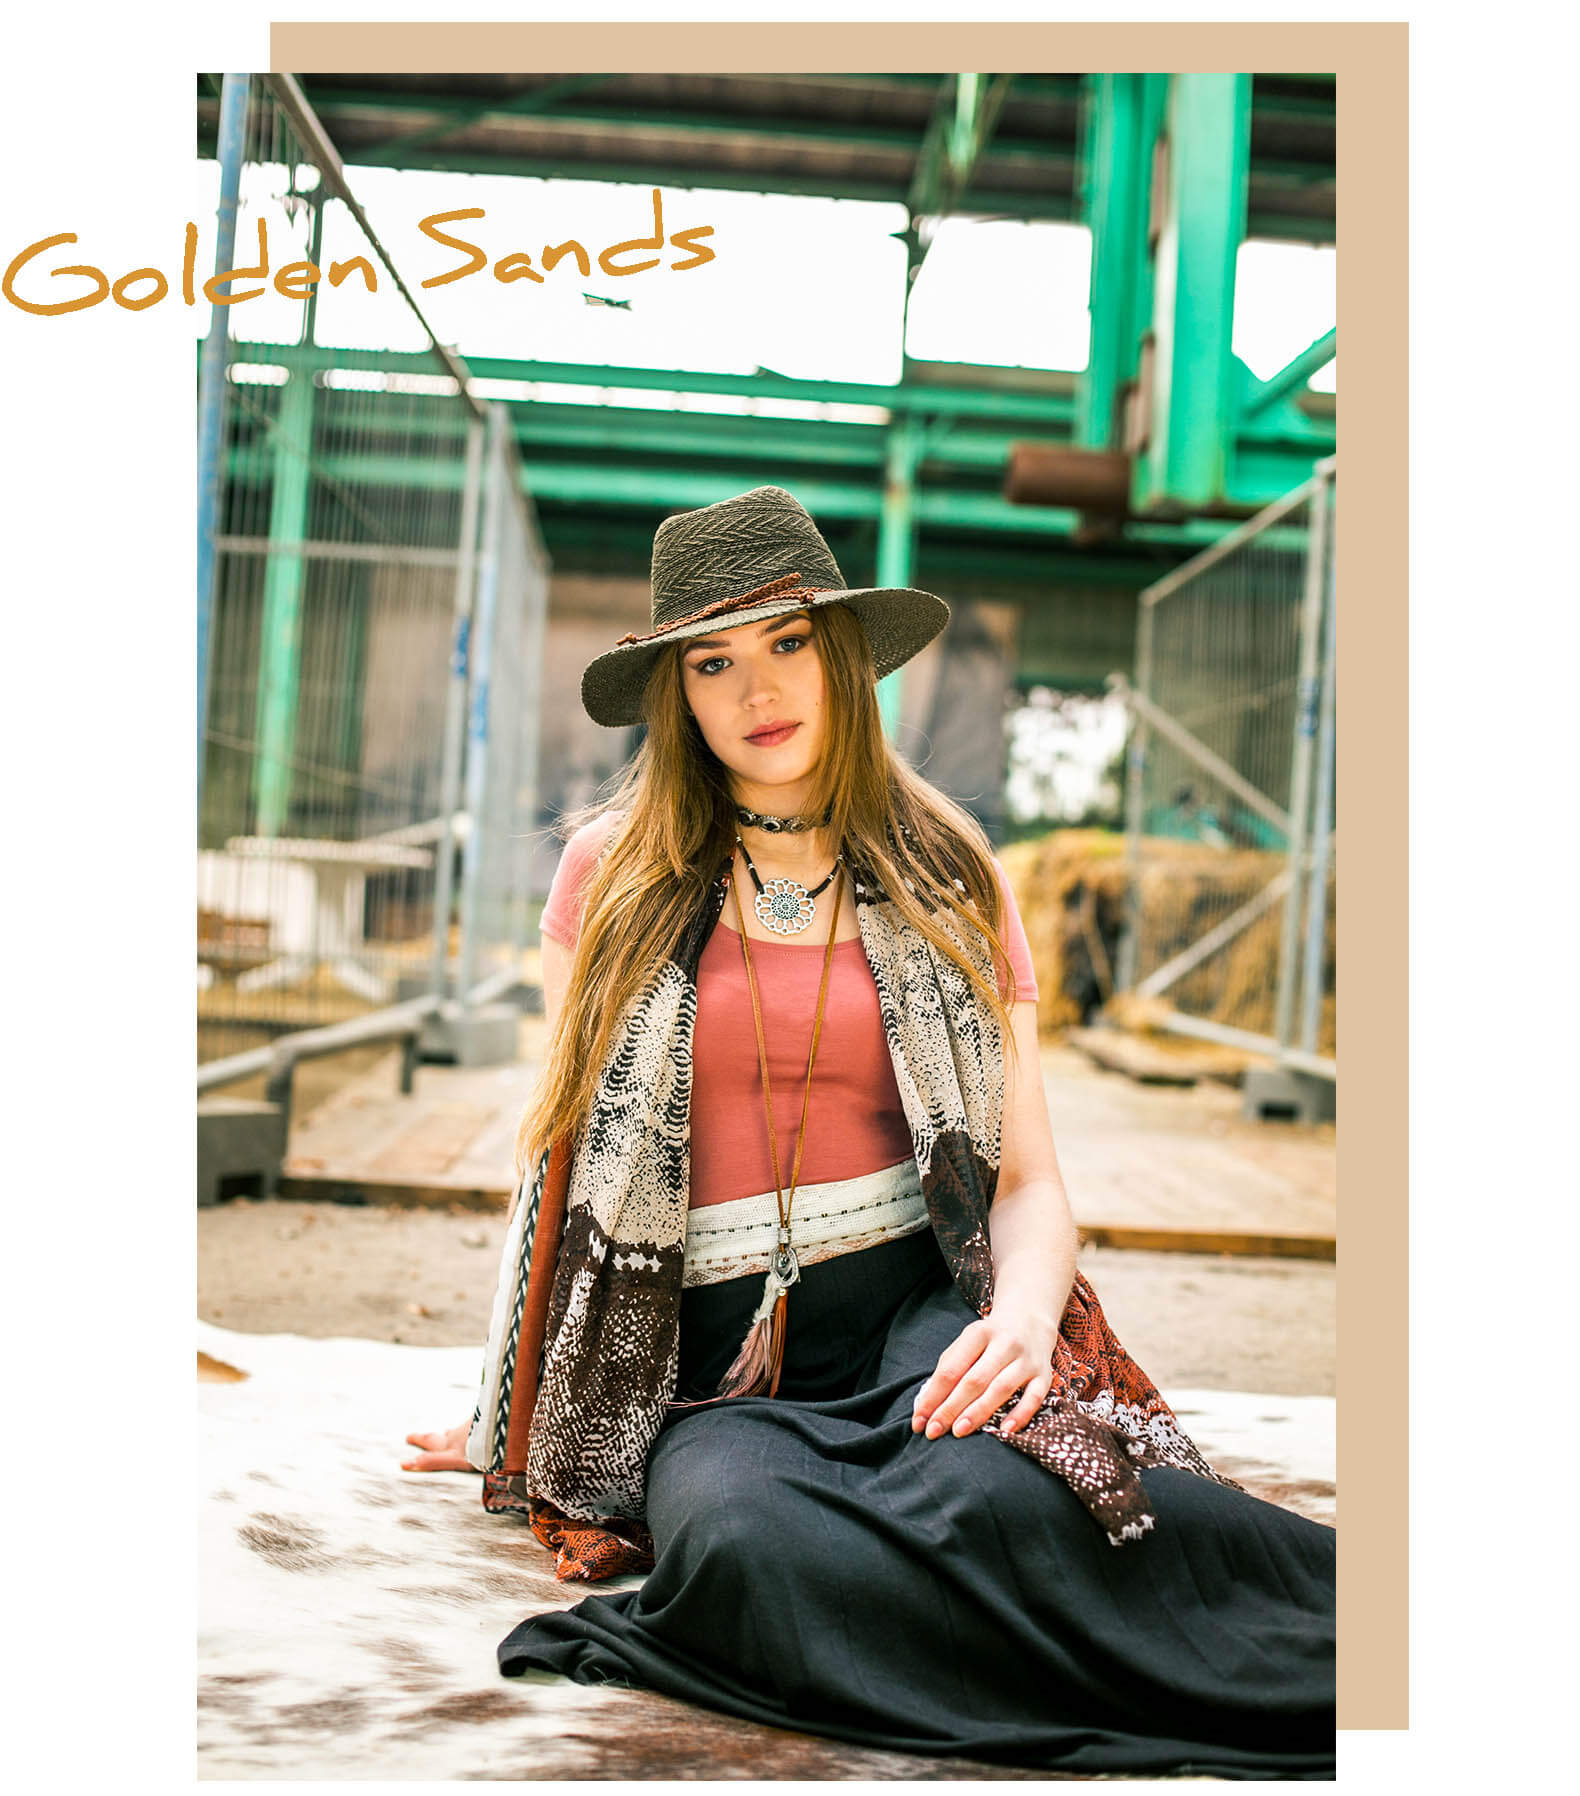 golden sands thema collectie